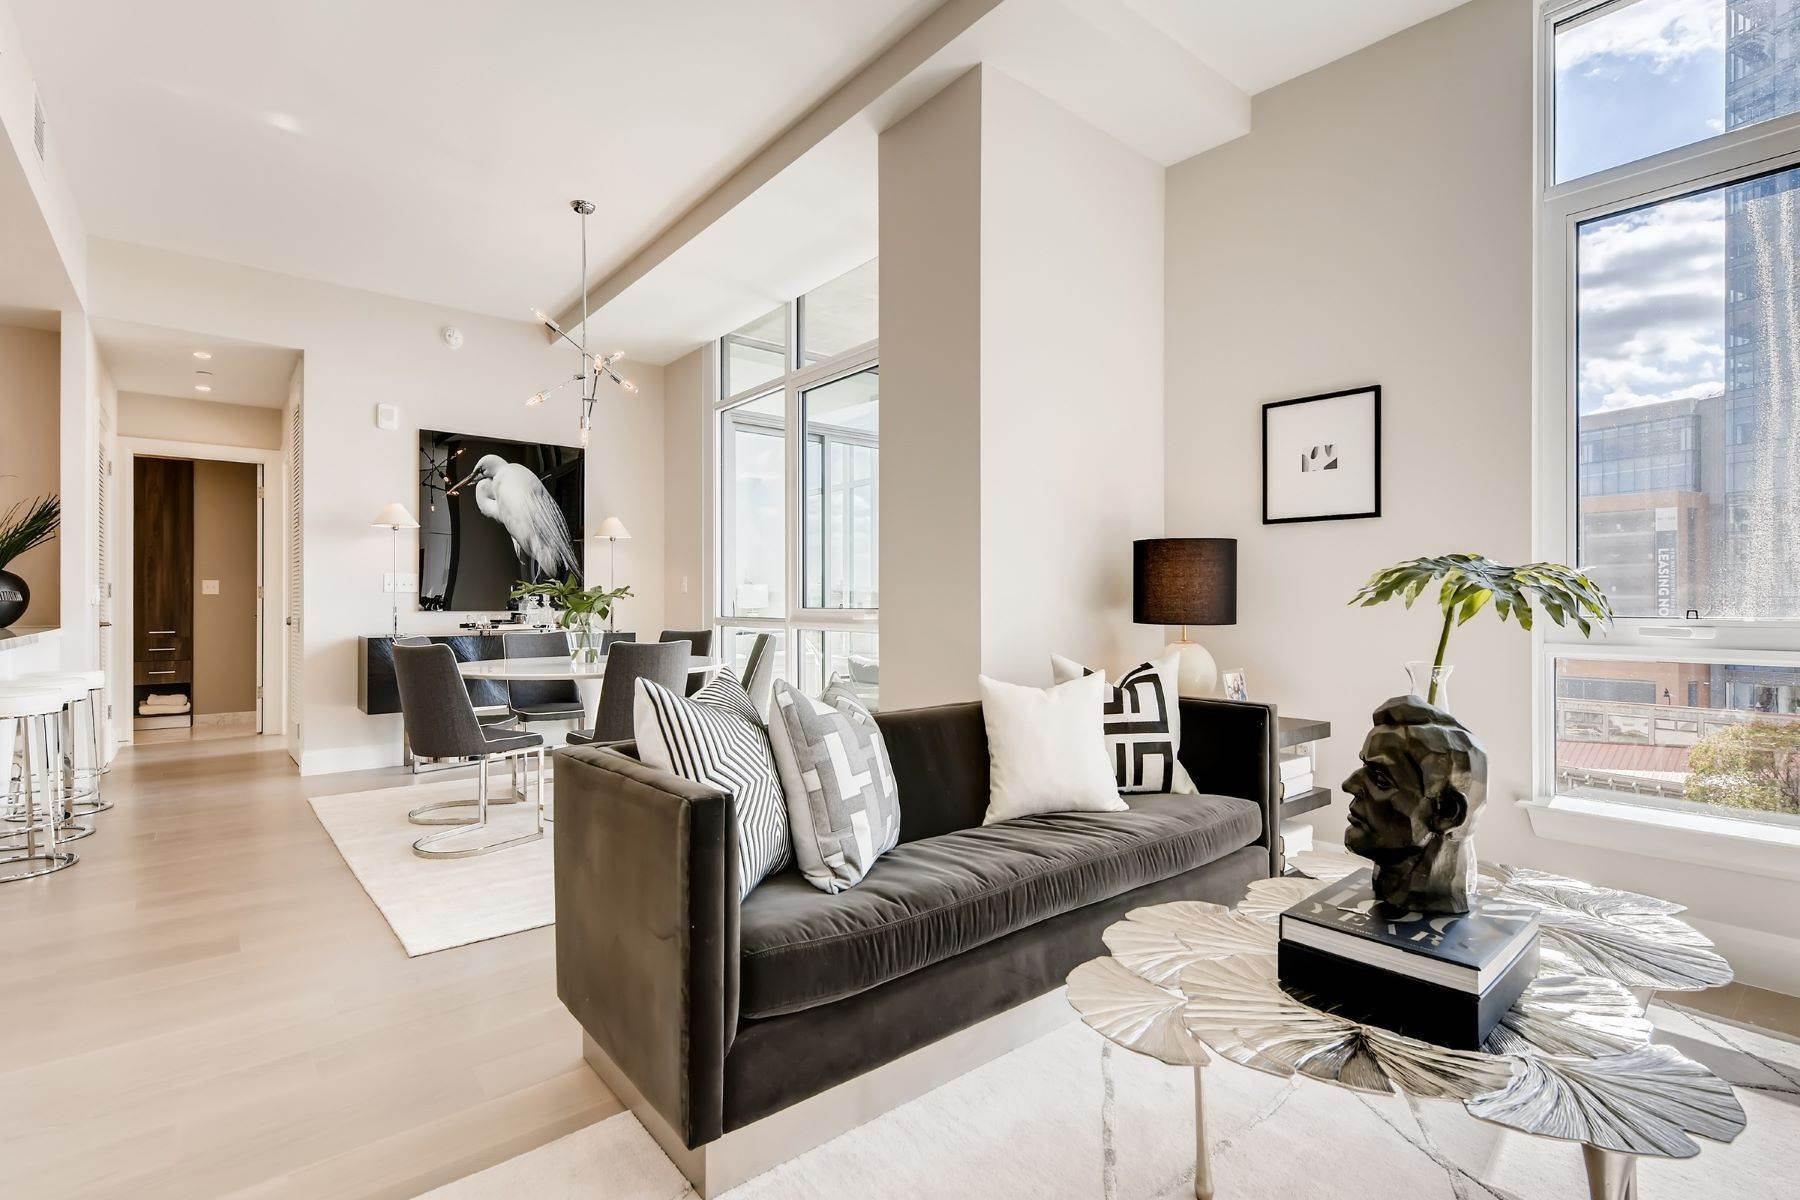 Condominiums for Sale at Liberty Harbor East Condominium 1330 Lancaster Street #403 Baltimore, Maryland 21231 United States